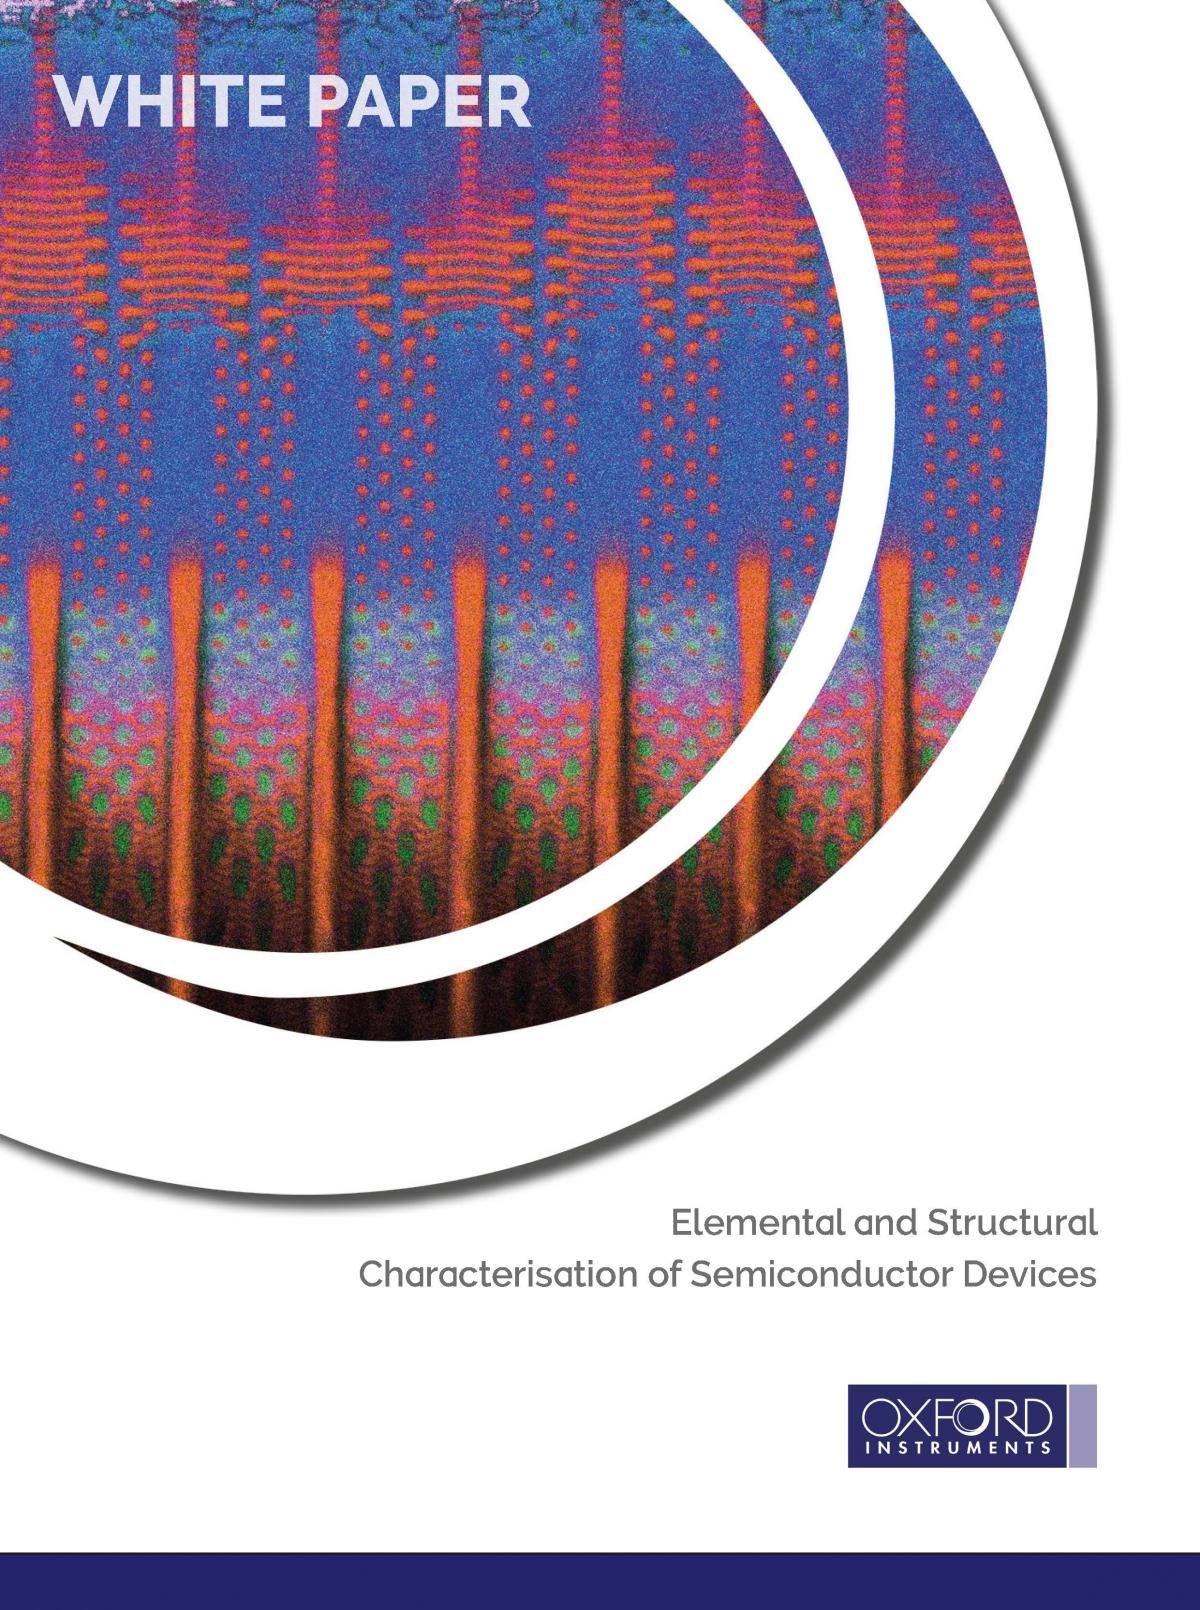 Elemental and Structural Characterisation of Semiconductor Devices Whitepaper